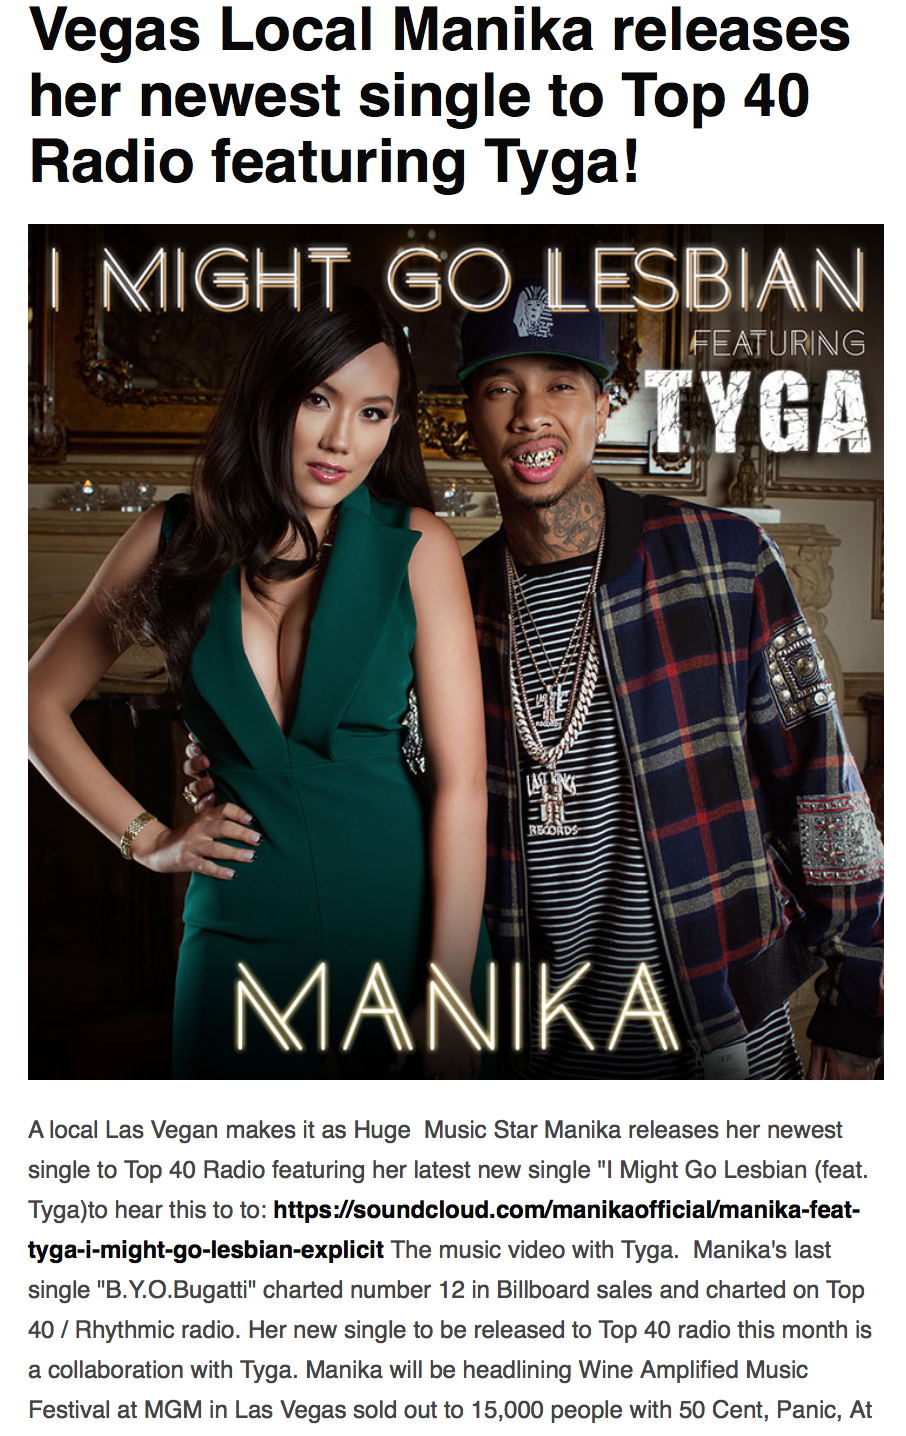 Vegas Scene Magazine Features Manika and Tyga